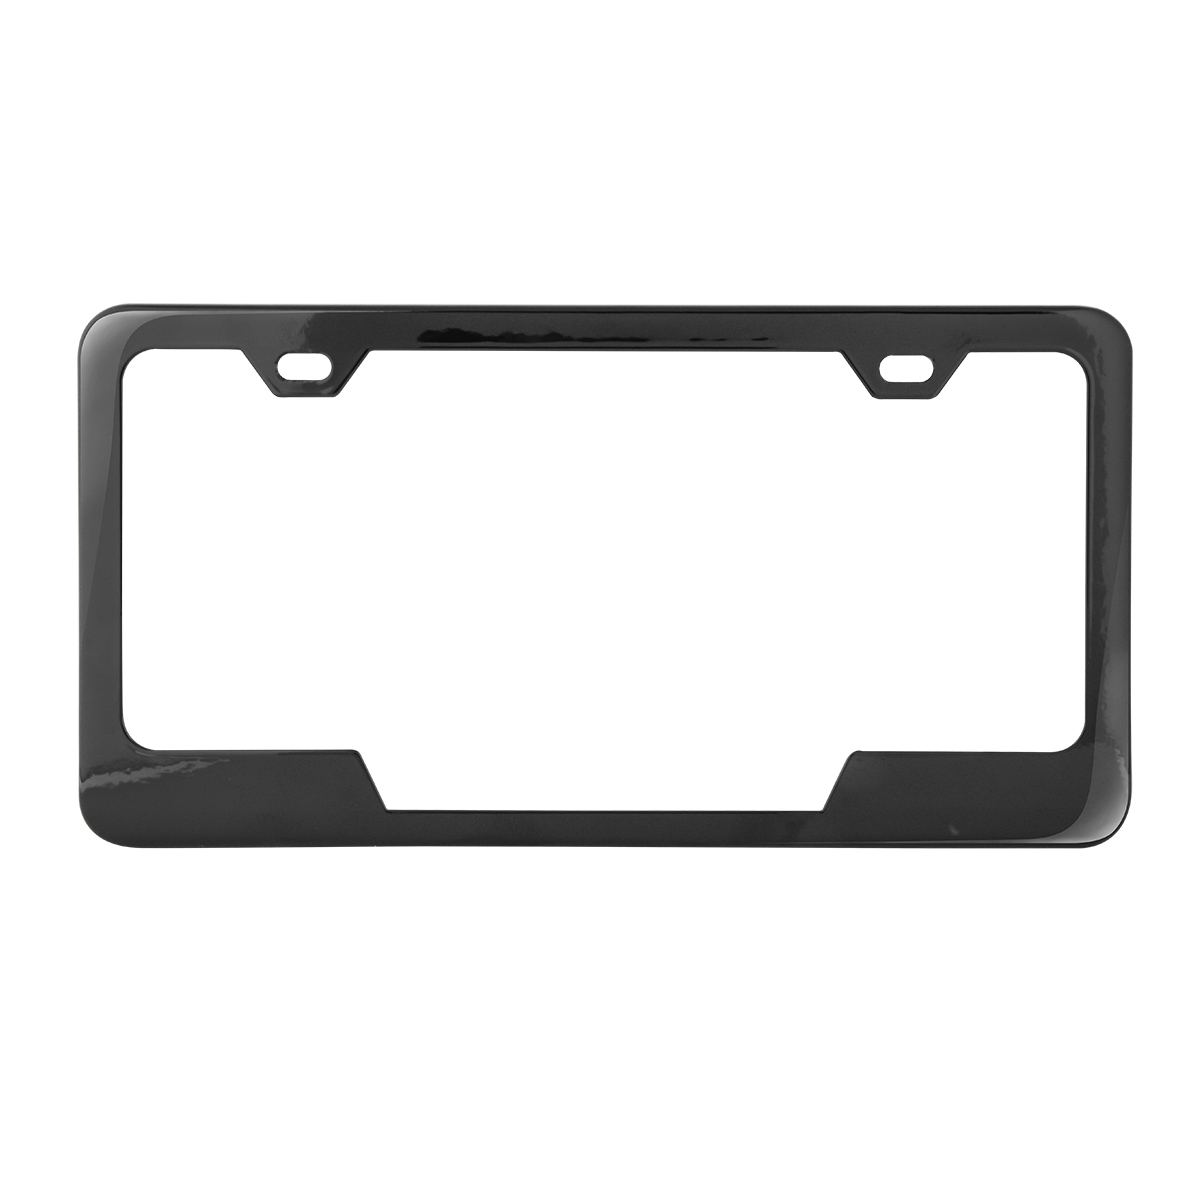 60407 Plain 2-Hole License Plate Frames with Center Cut